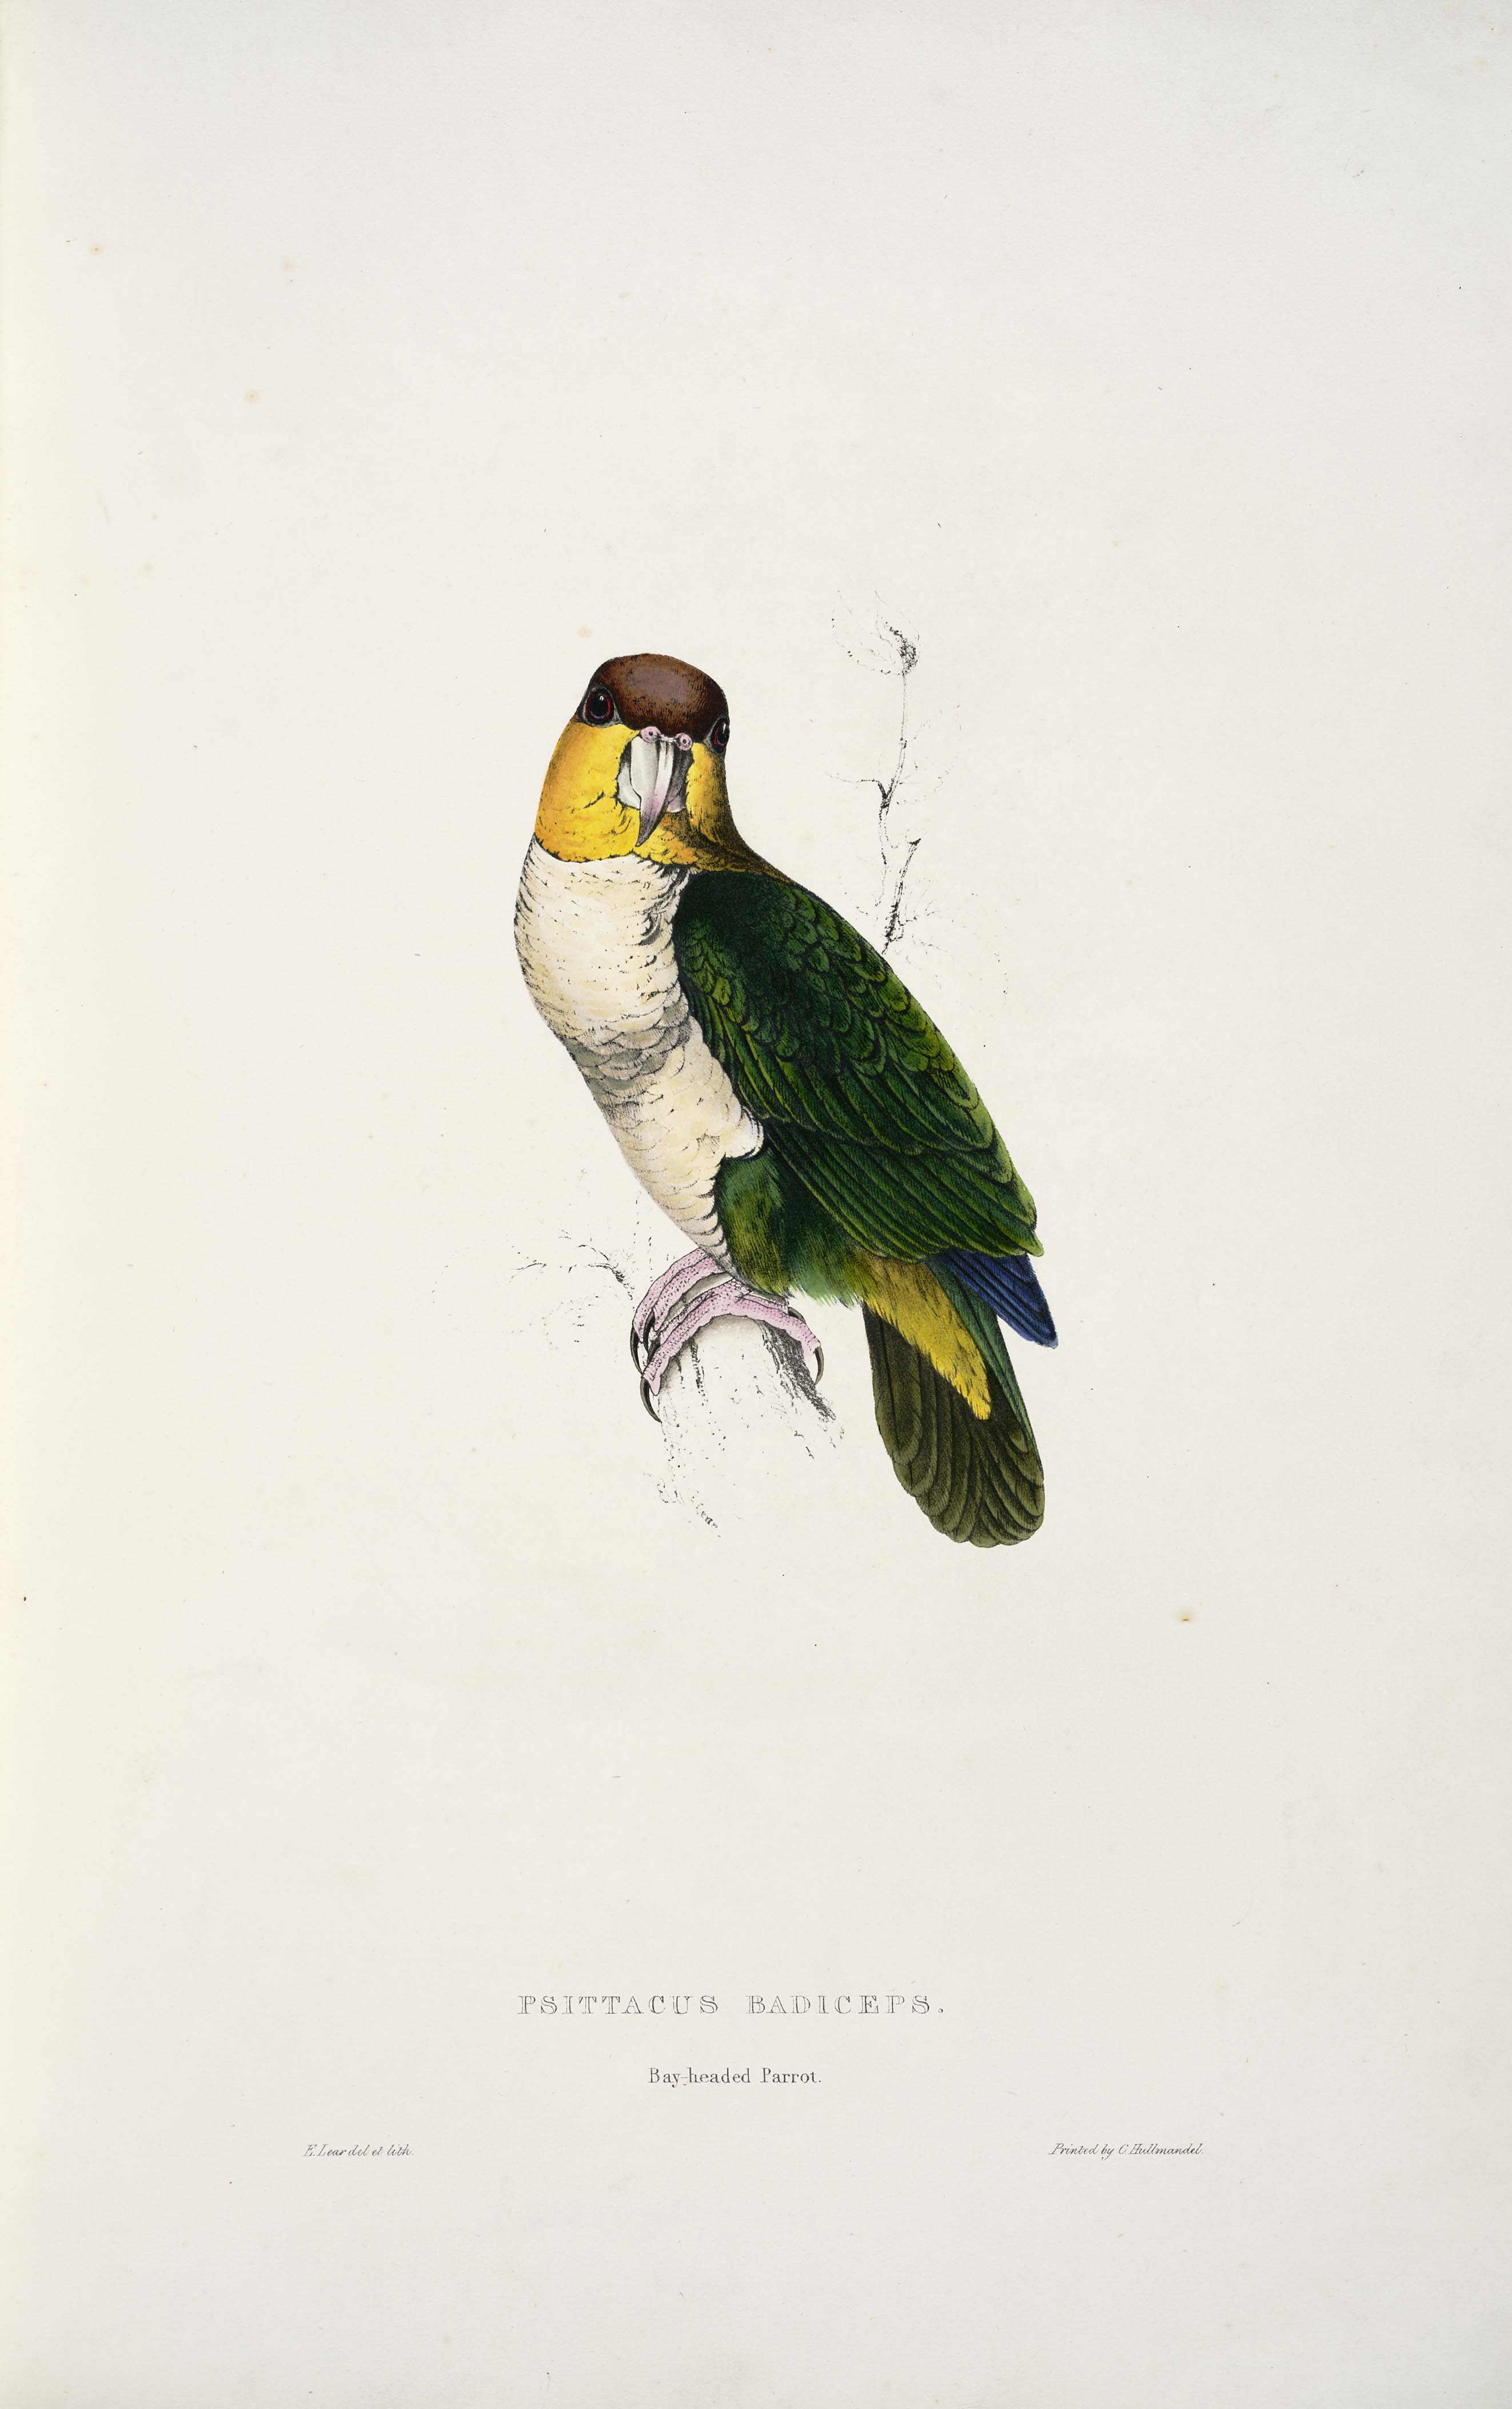 File:Pionites leucogaster -Psittacus badiceps Bay-headed parrot -by Edward  Lear 1812